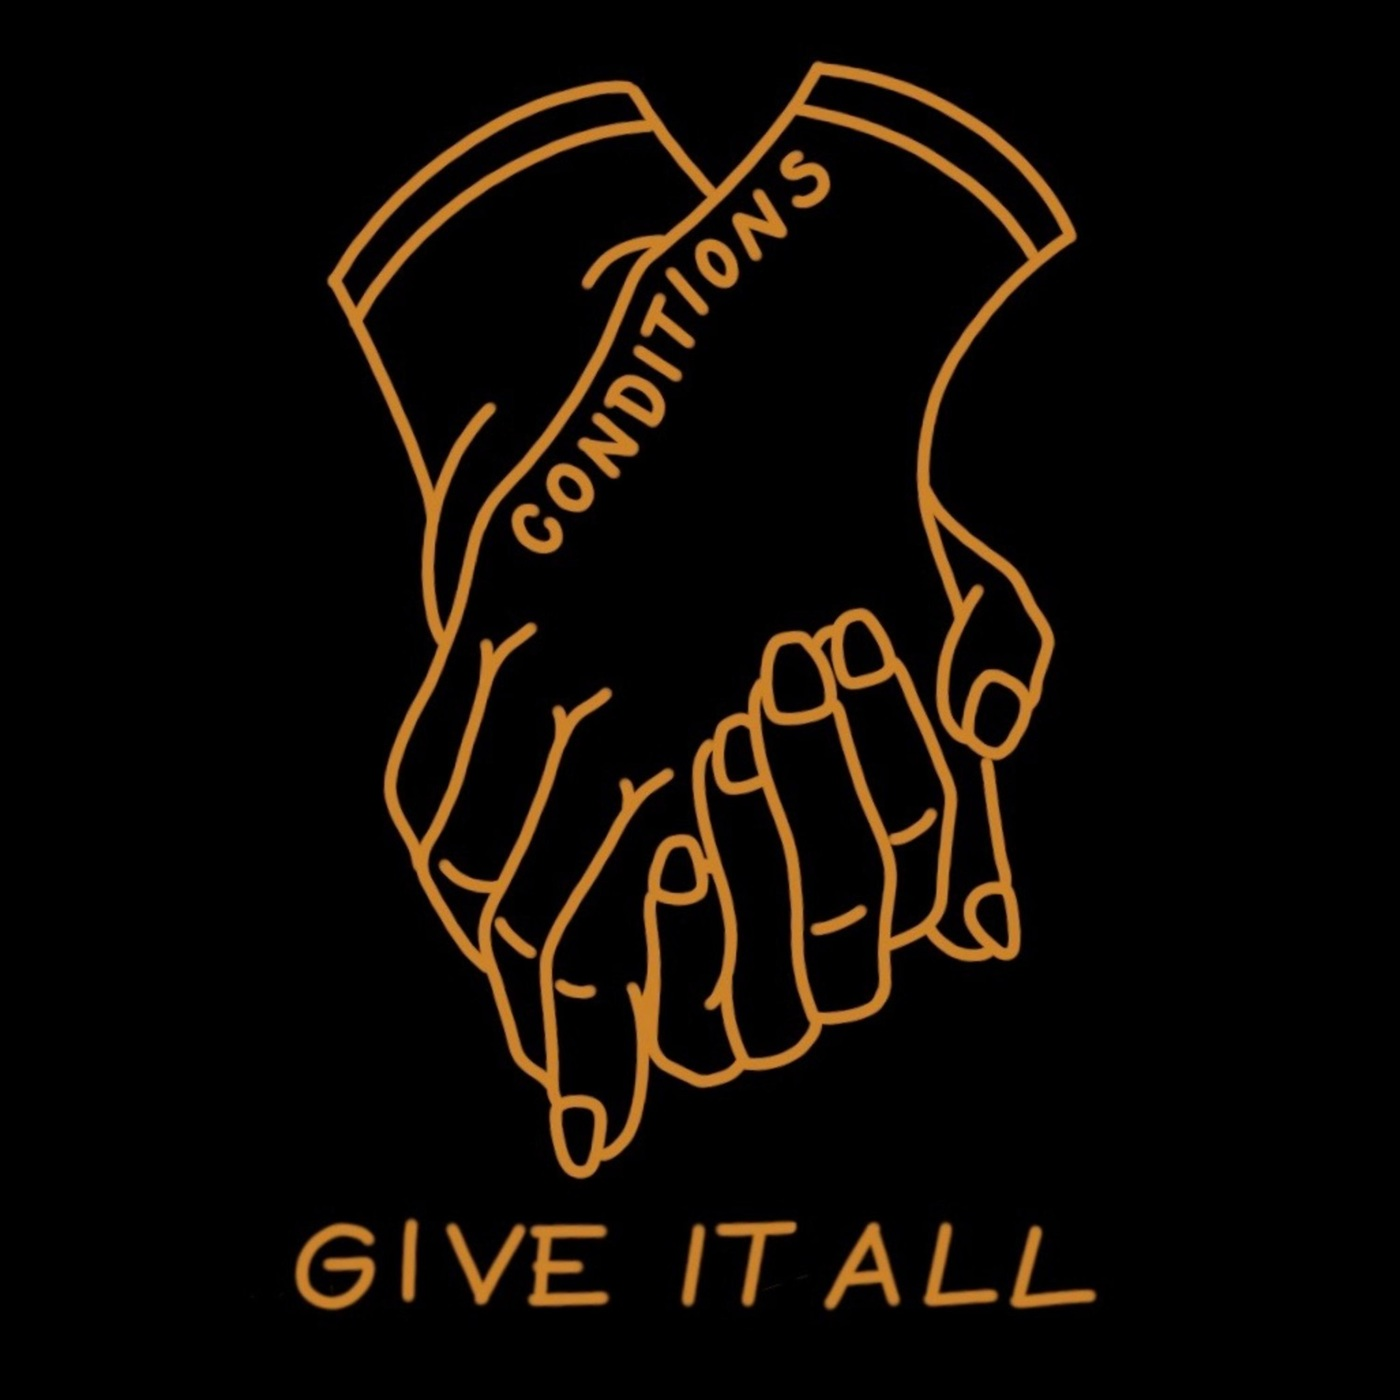 Conditions - Give It All [single] (2018)